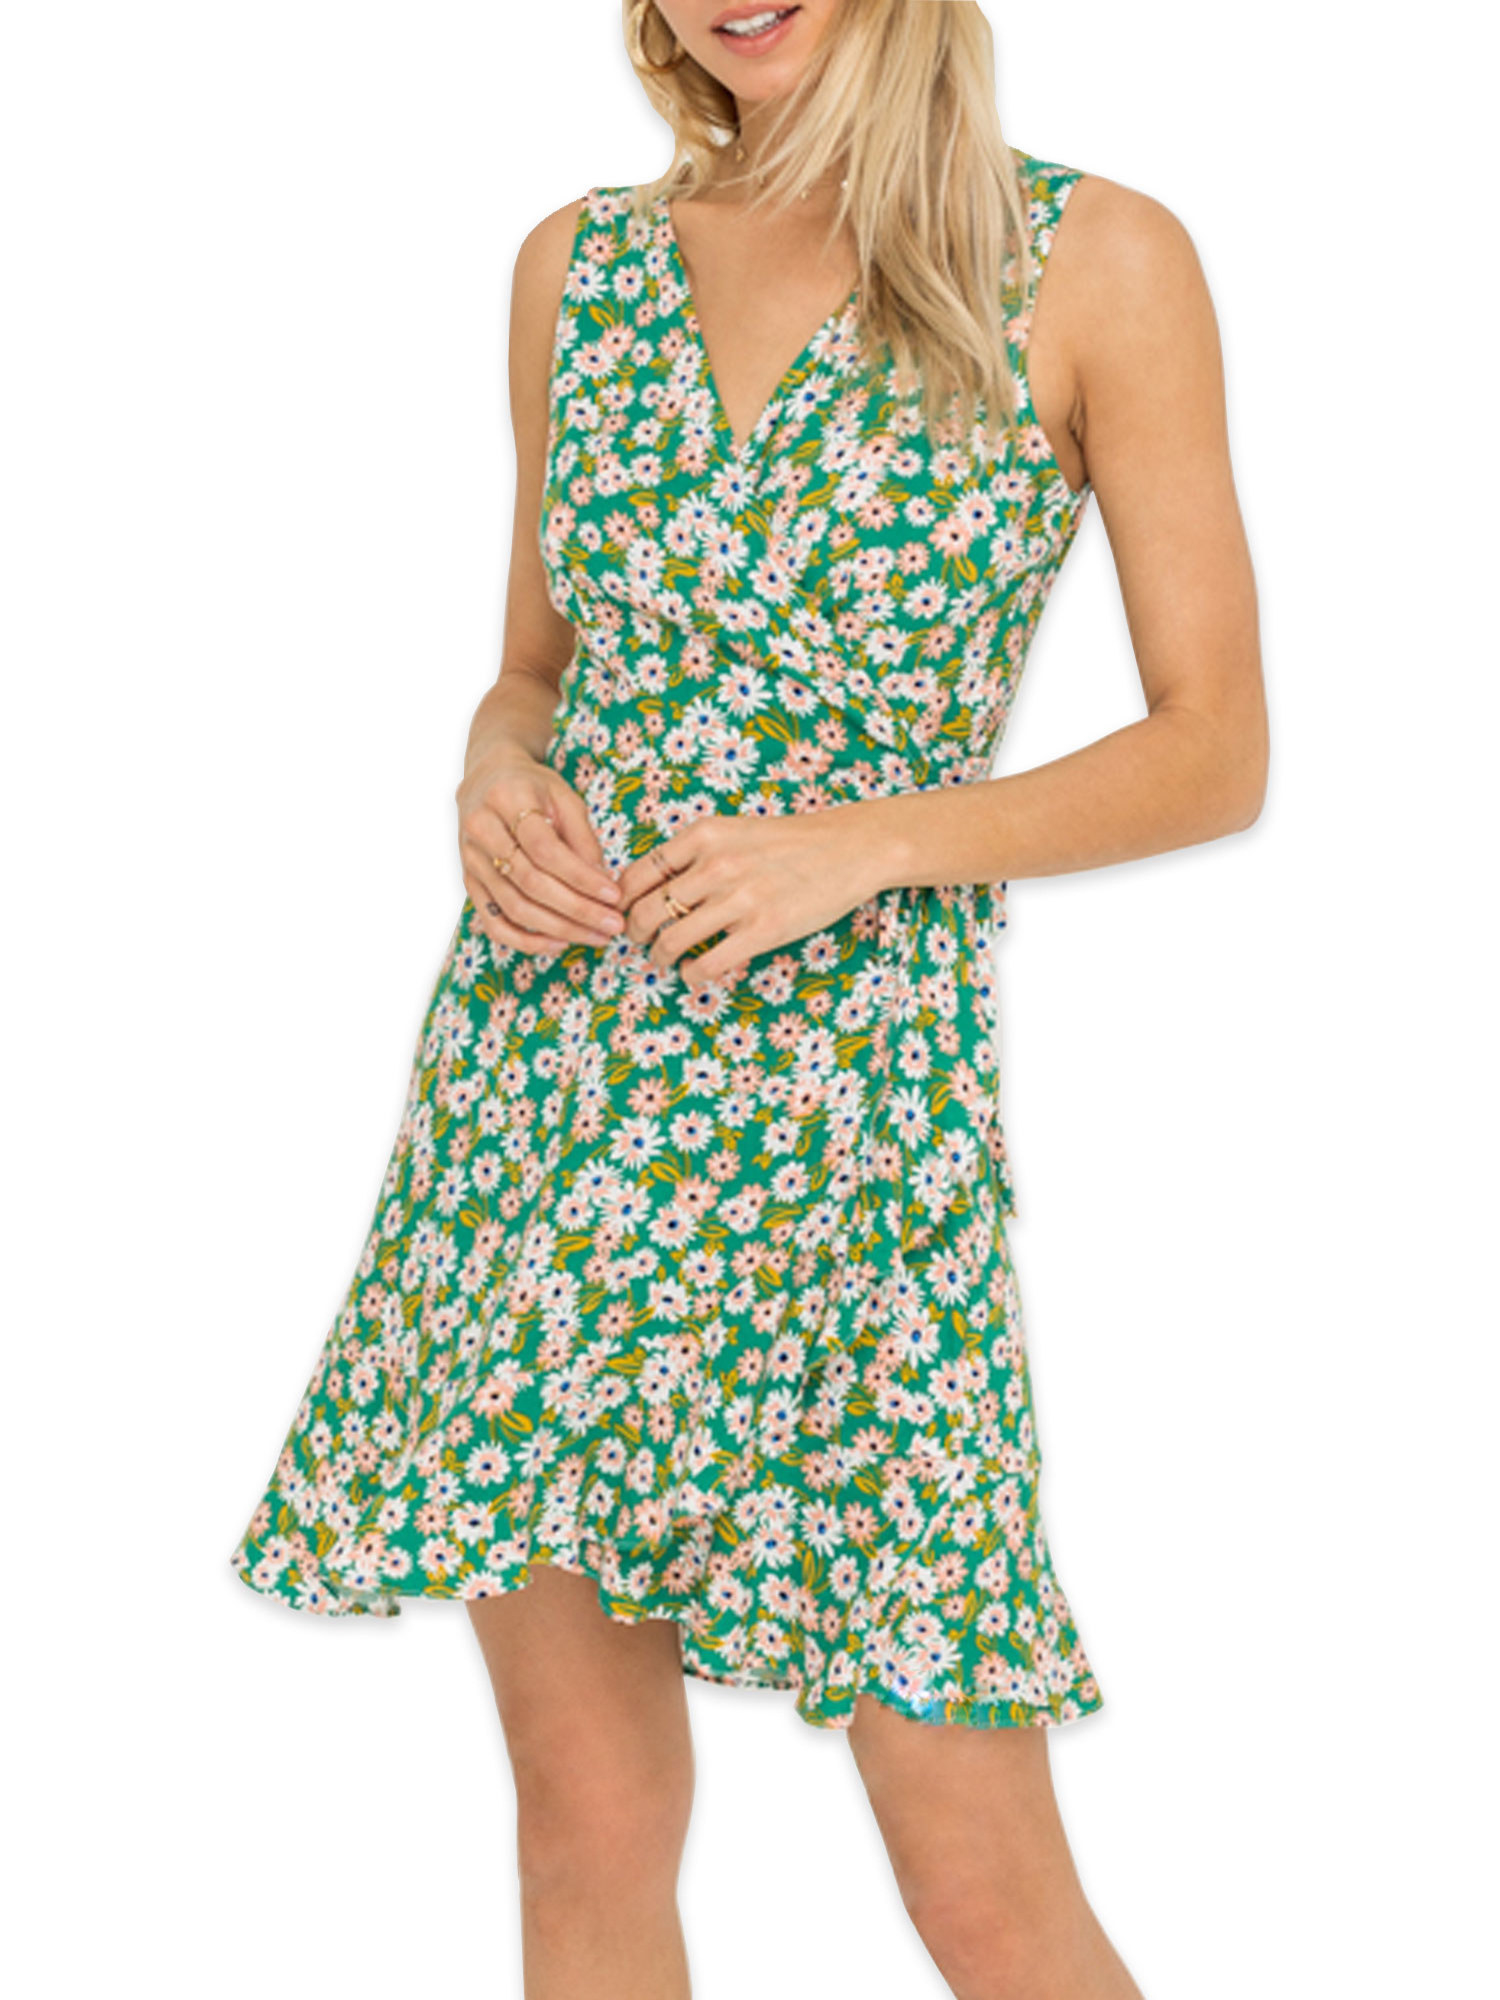 model in a green floral wrap dress with no sleeves